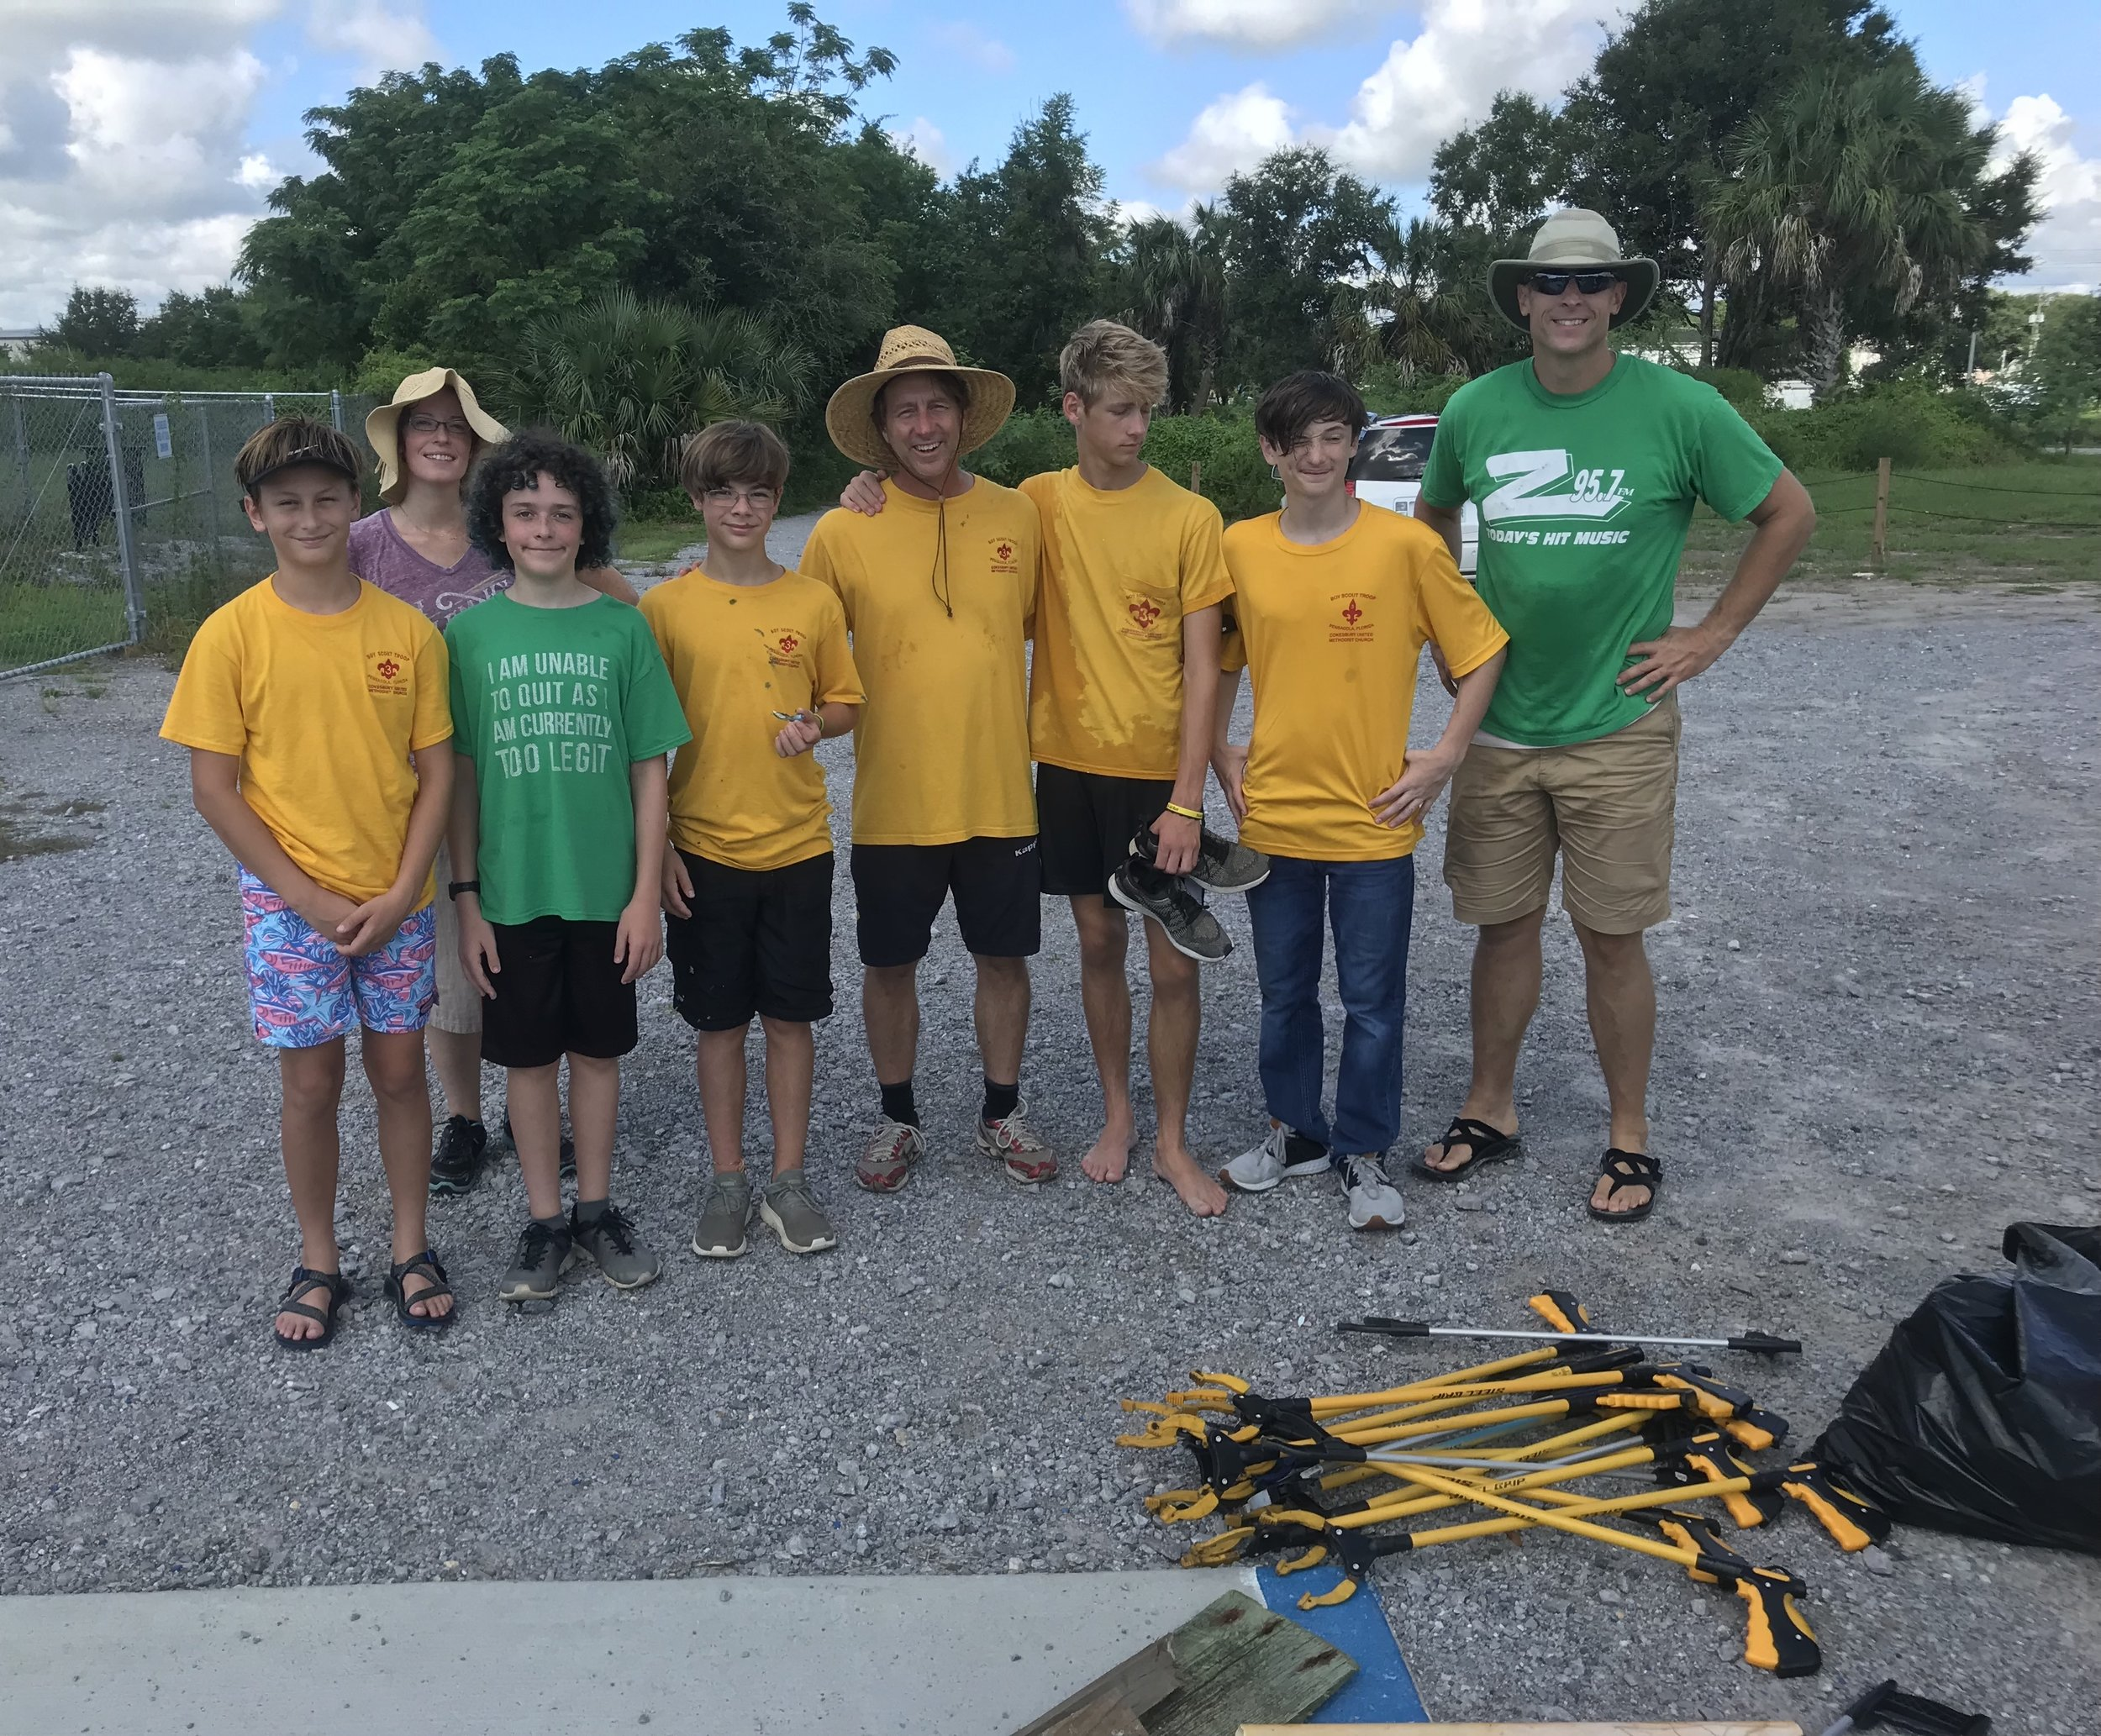 - Members of Scout Troop 3 from Cokesbury United Methodist Church helped 33 volunteers pick up 116 lbs at Bruce Beach. Note; for the first time in months I didn't pick up a single tooth flosser!A further 95 lbs was picked up 23 volunteers at Sanders Beach